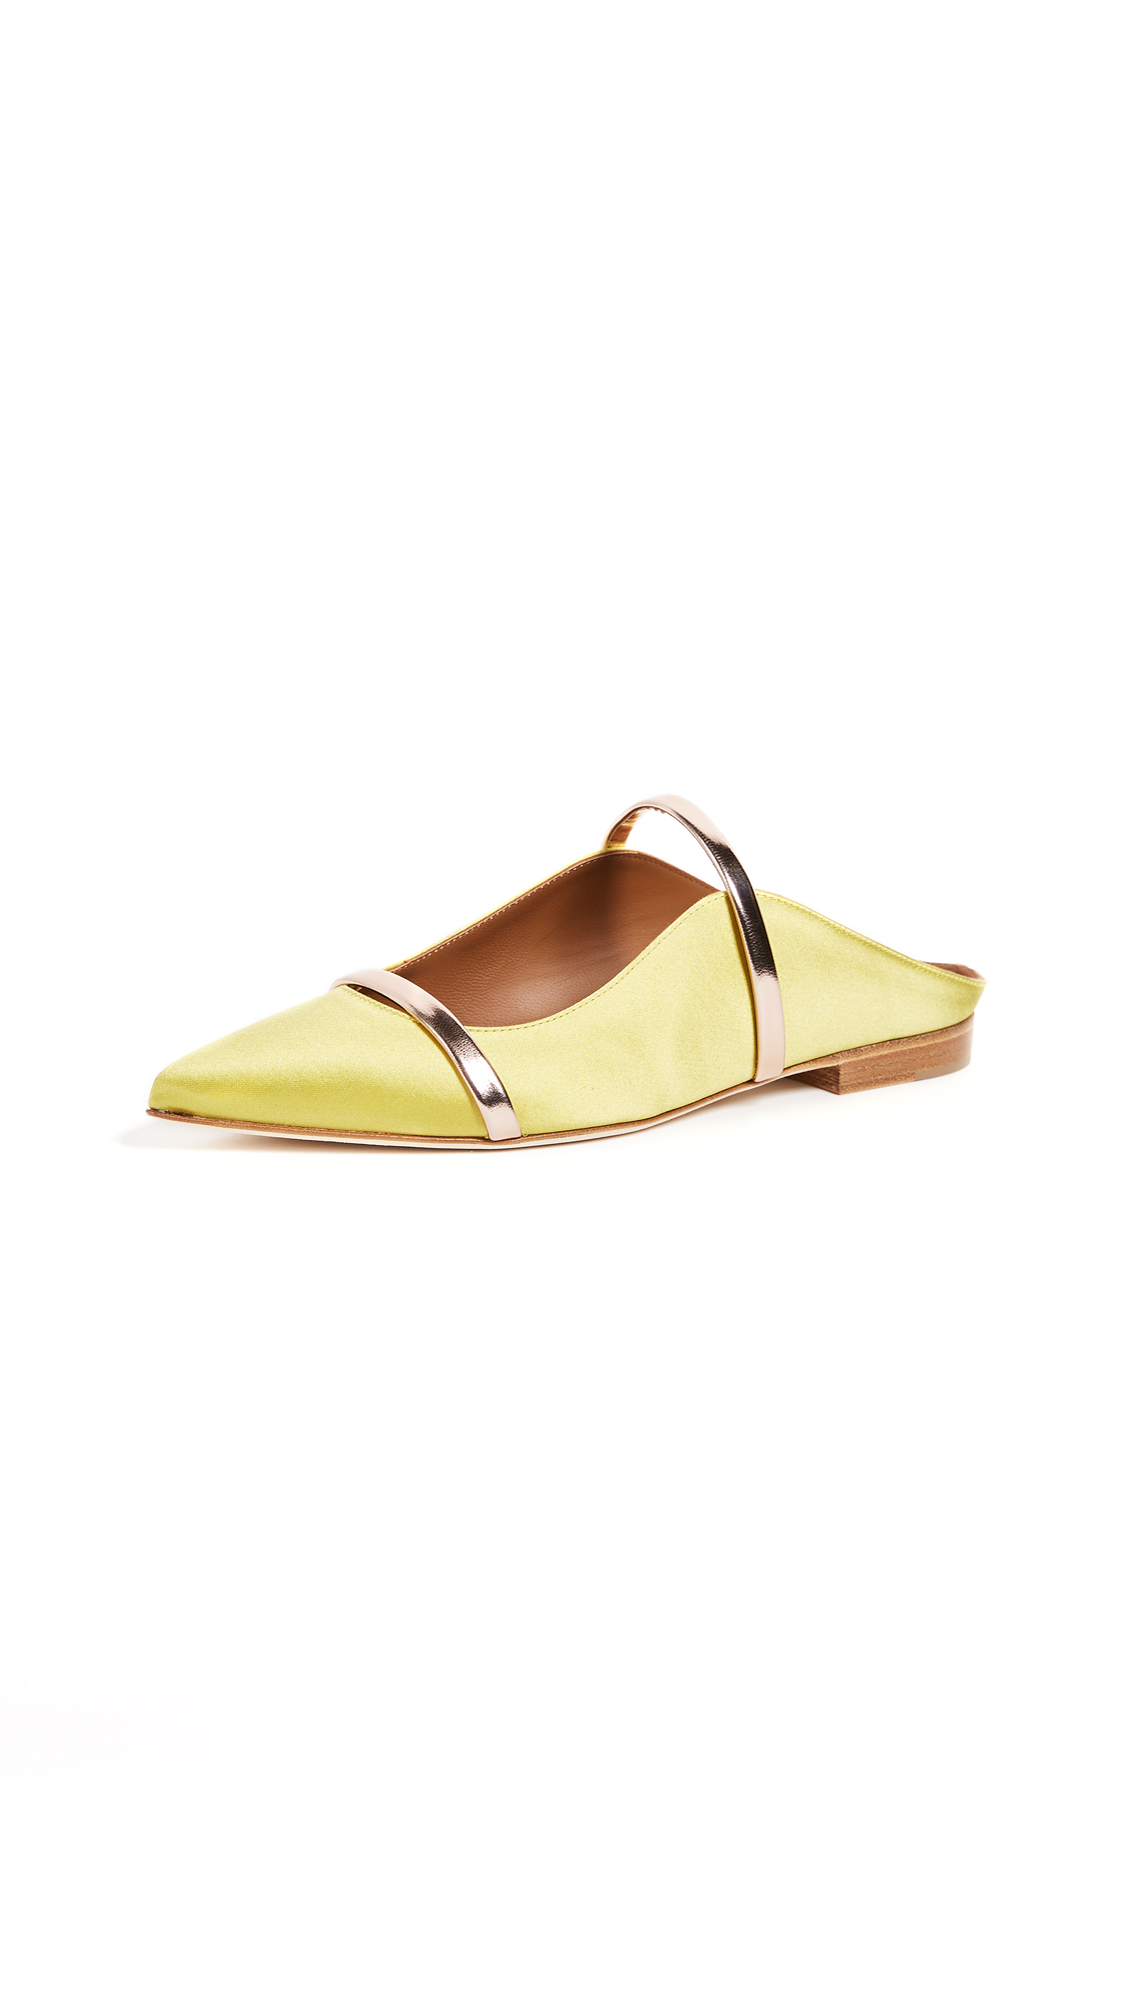 Malone Souliers Maureen Flats - Yellow/Rose Gold